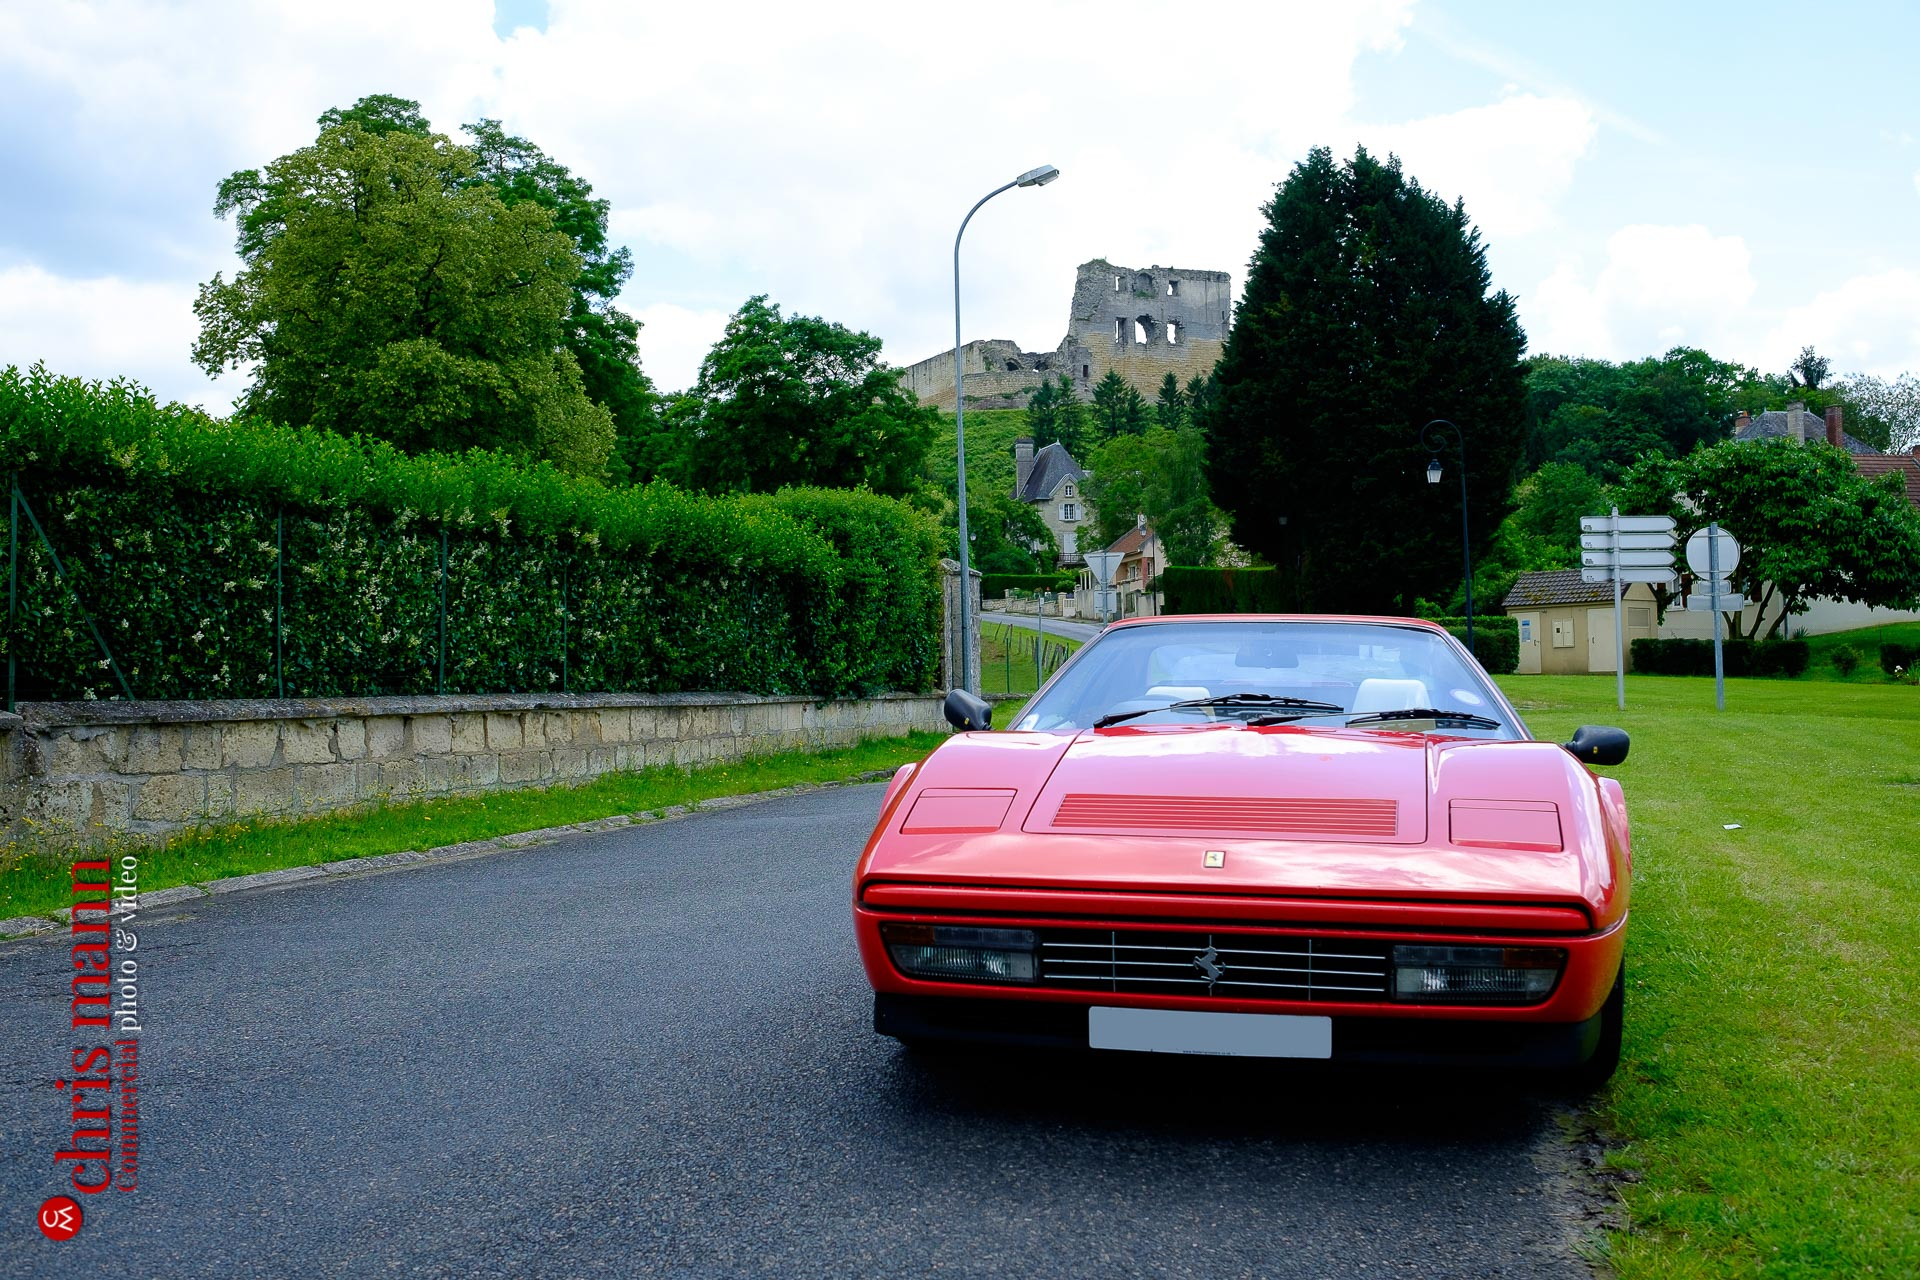 ferrari 328 coucy-le-chateau